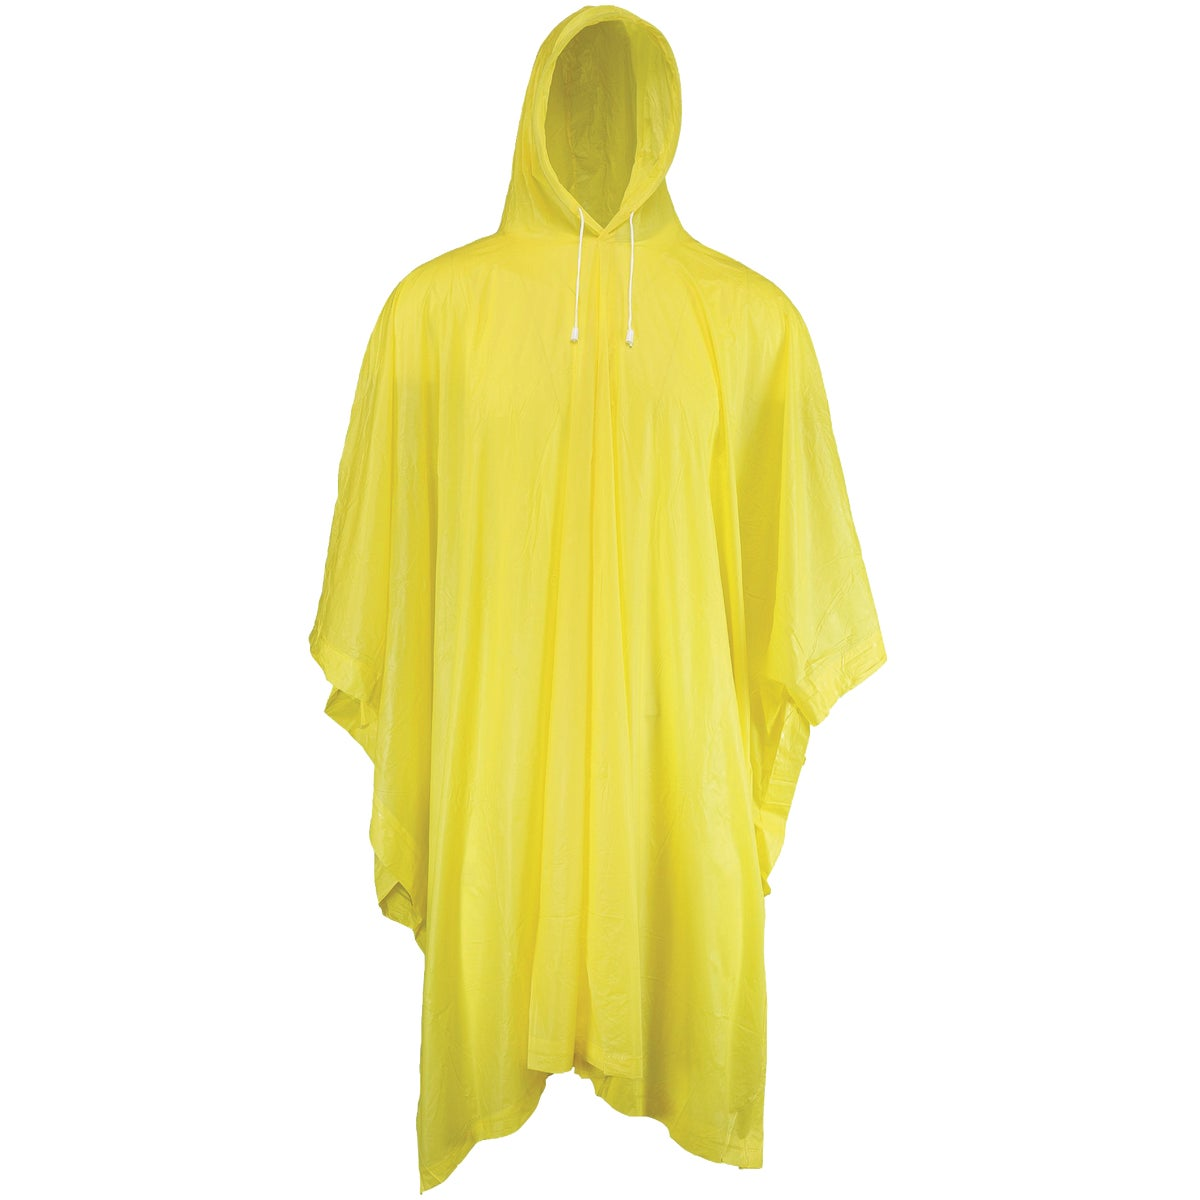 YELLOW 10MM PONCHO - R10410 by Custom Leathercraft